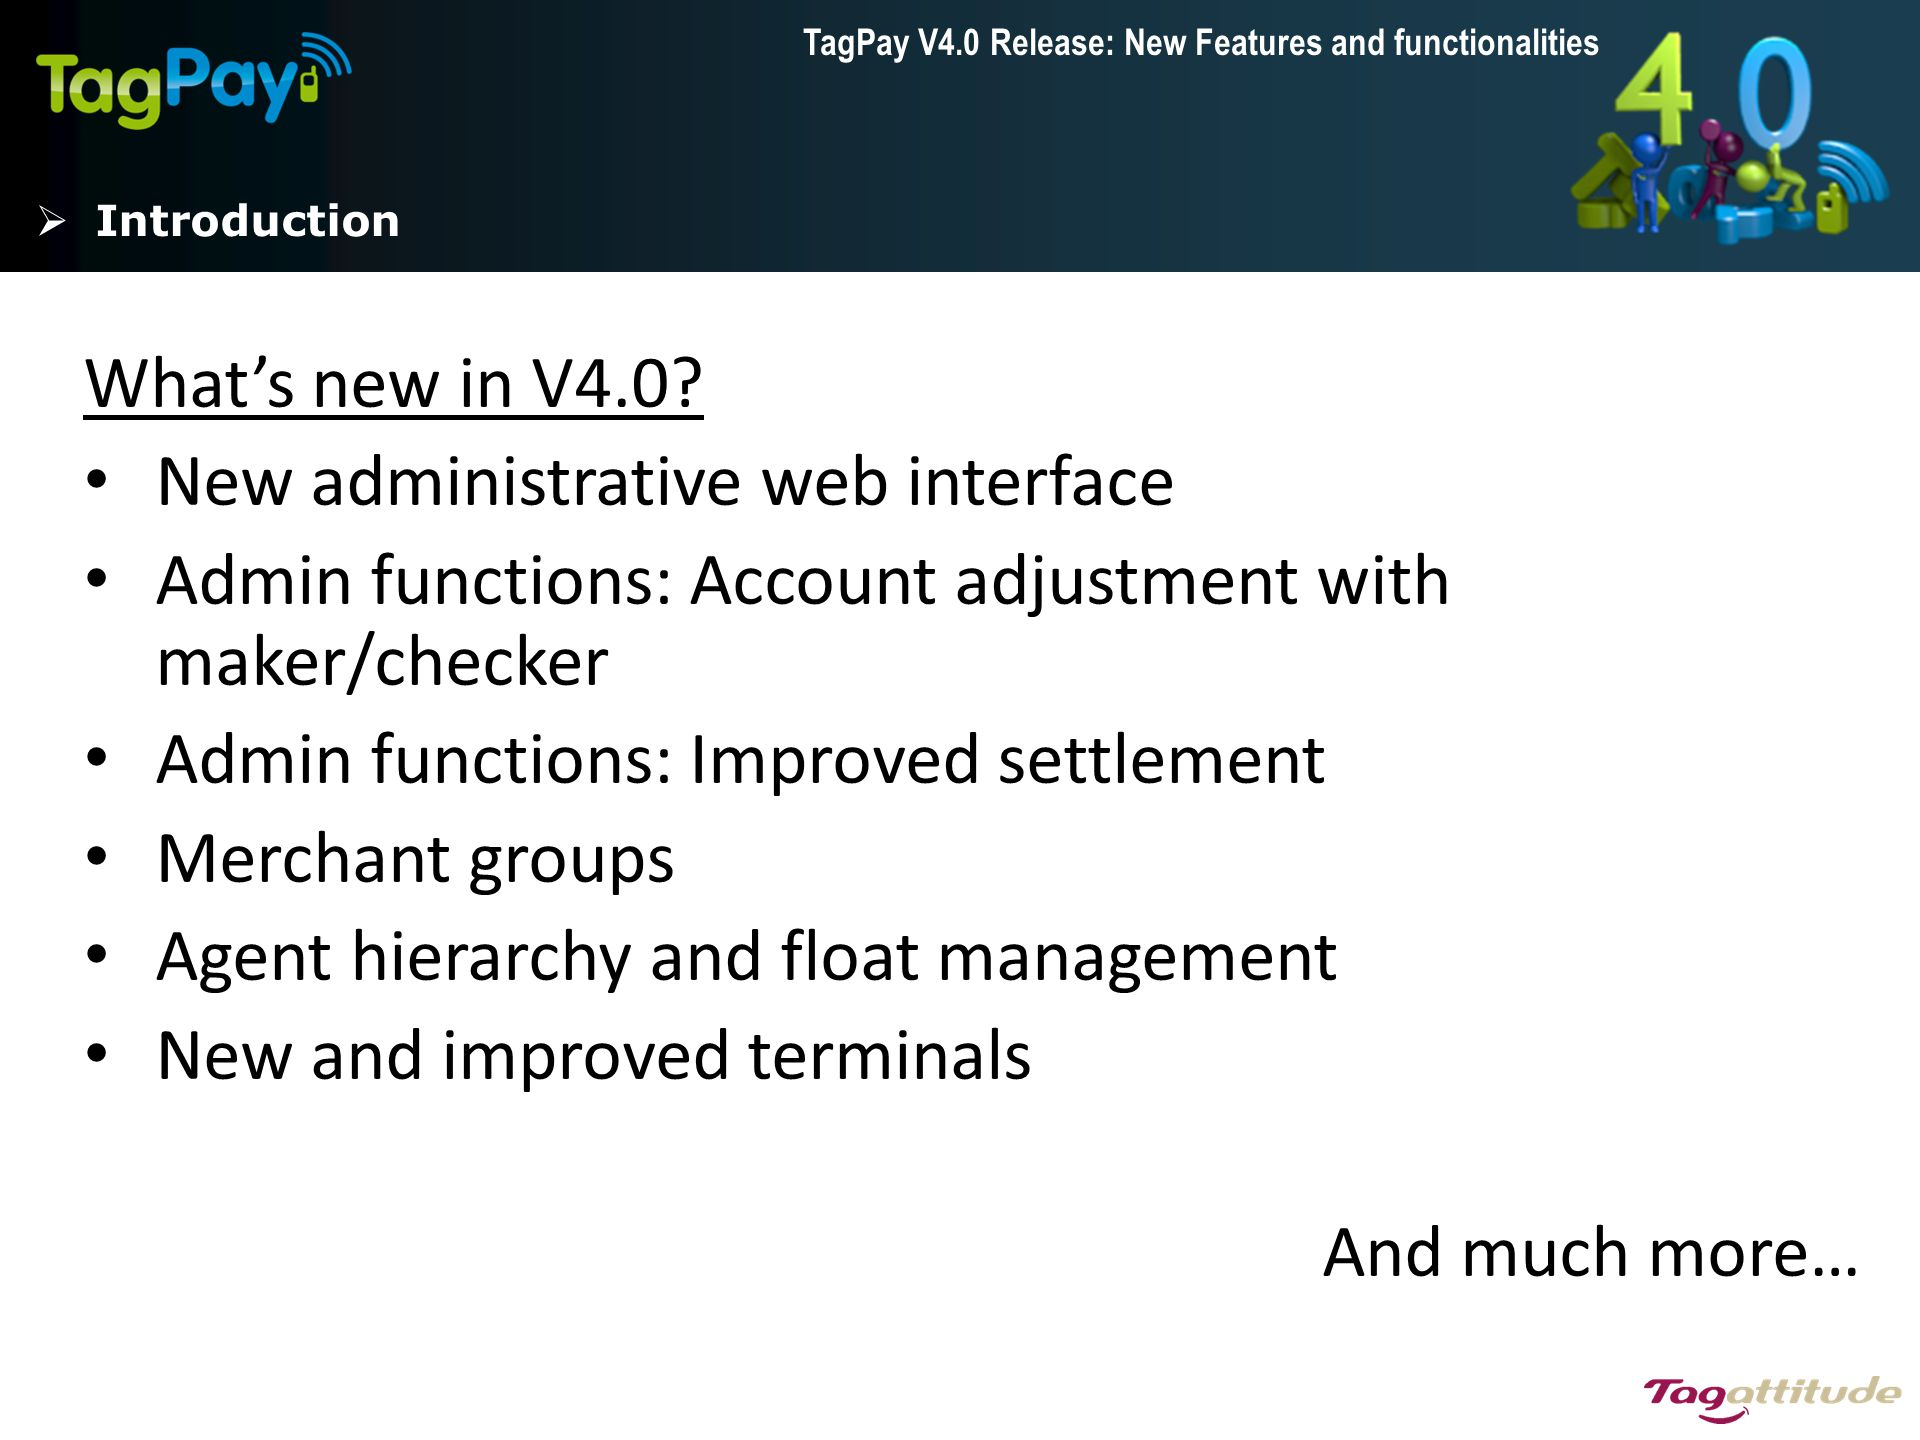 TagPay V4.0 Release: New Features and functionalities New administrative web interface Client File